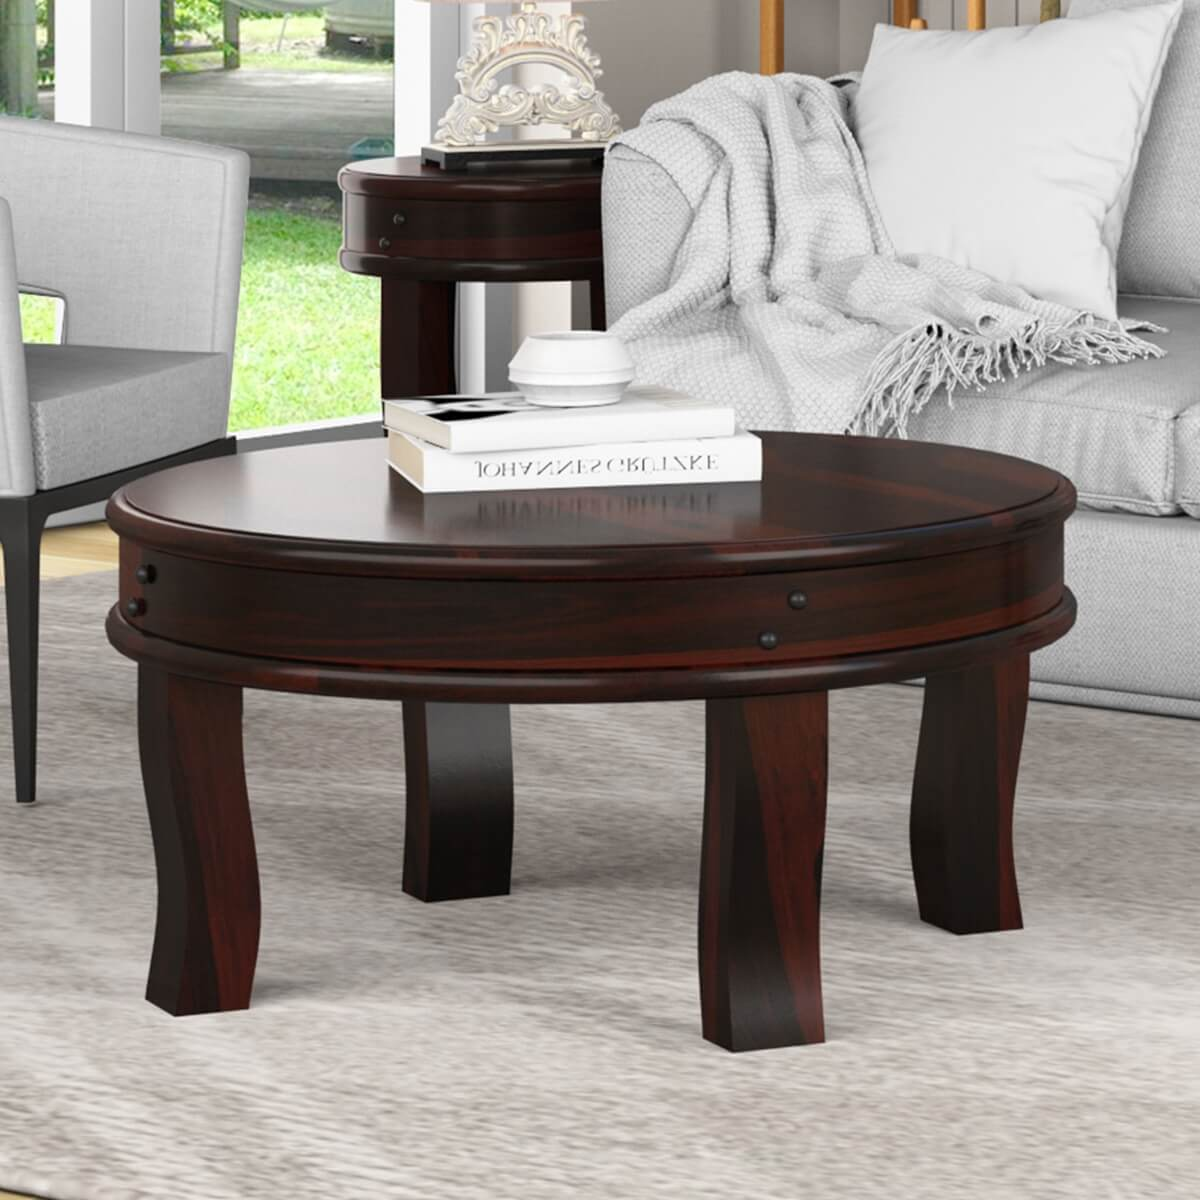 Full Moon Solid Wood 36 Round Coffee Table